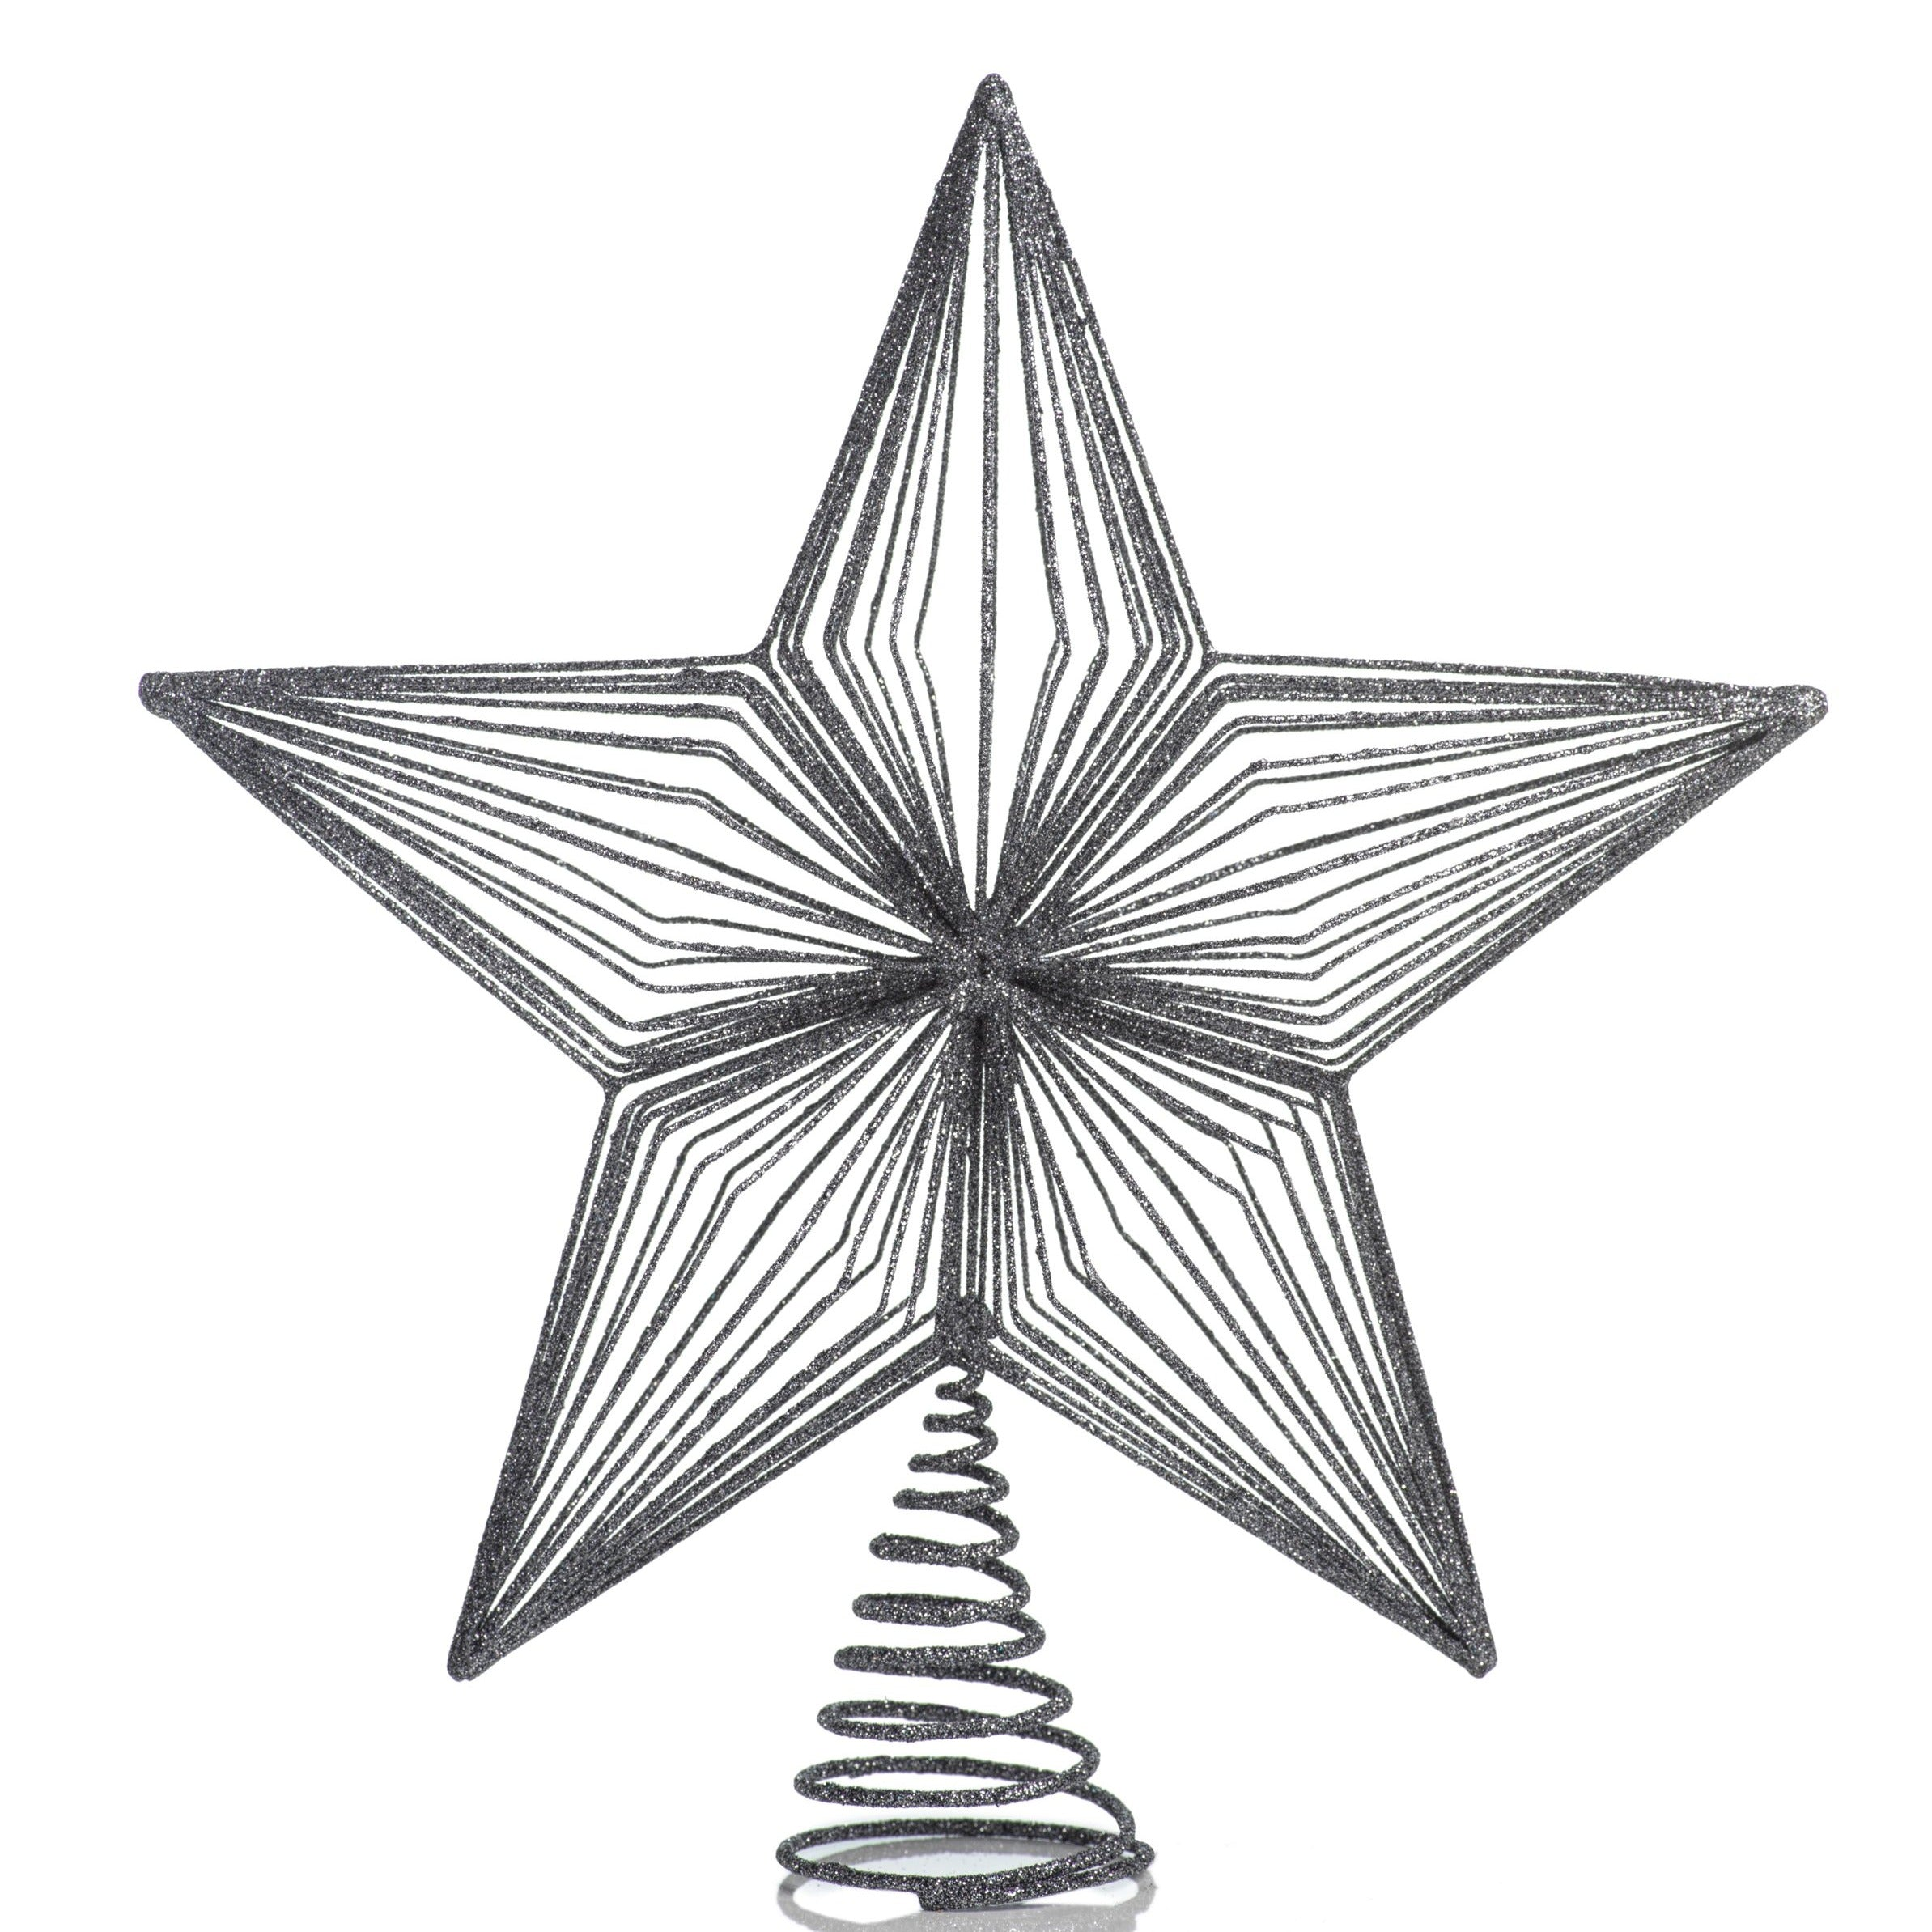 3D Star Tree Topper - CARLYLE AVENUE